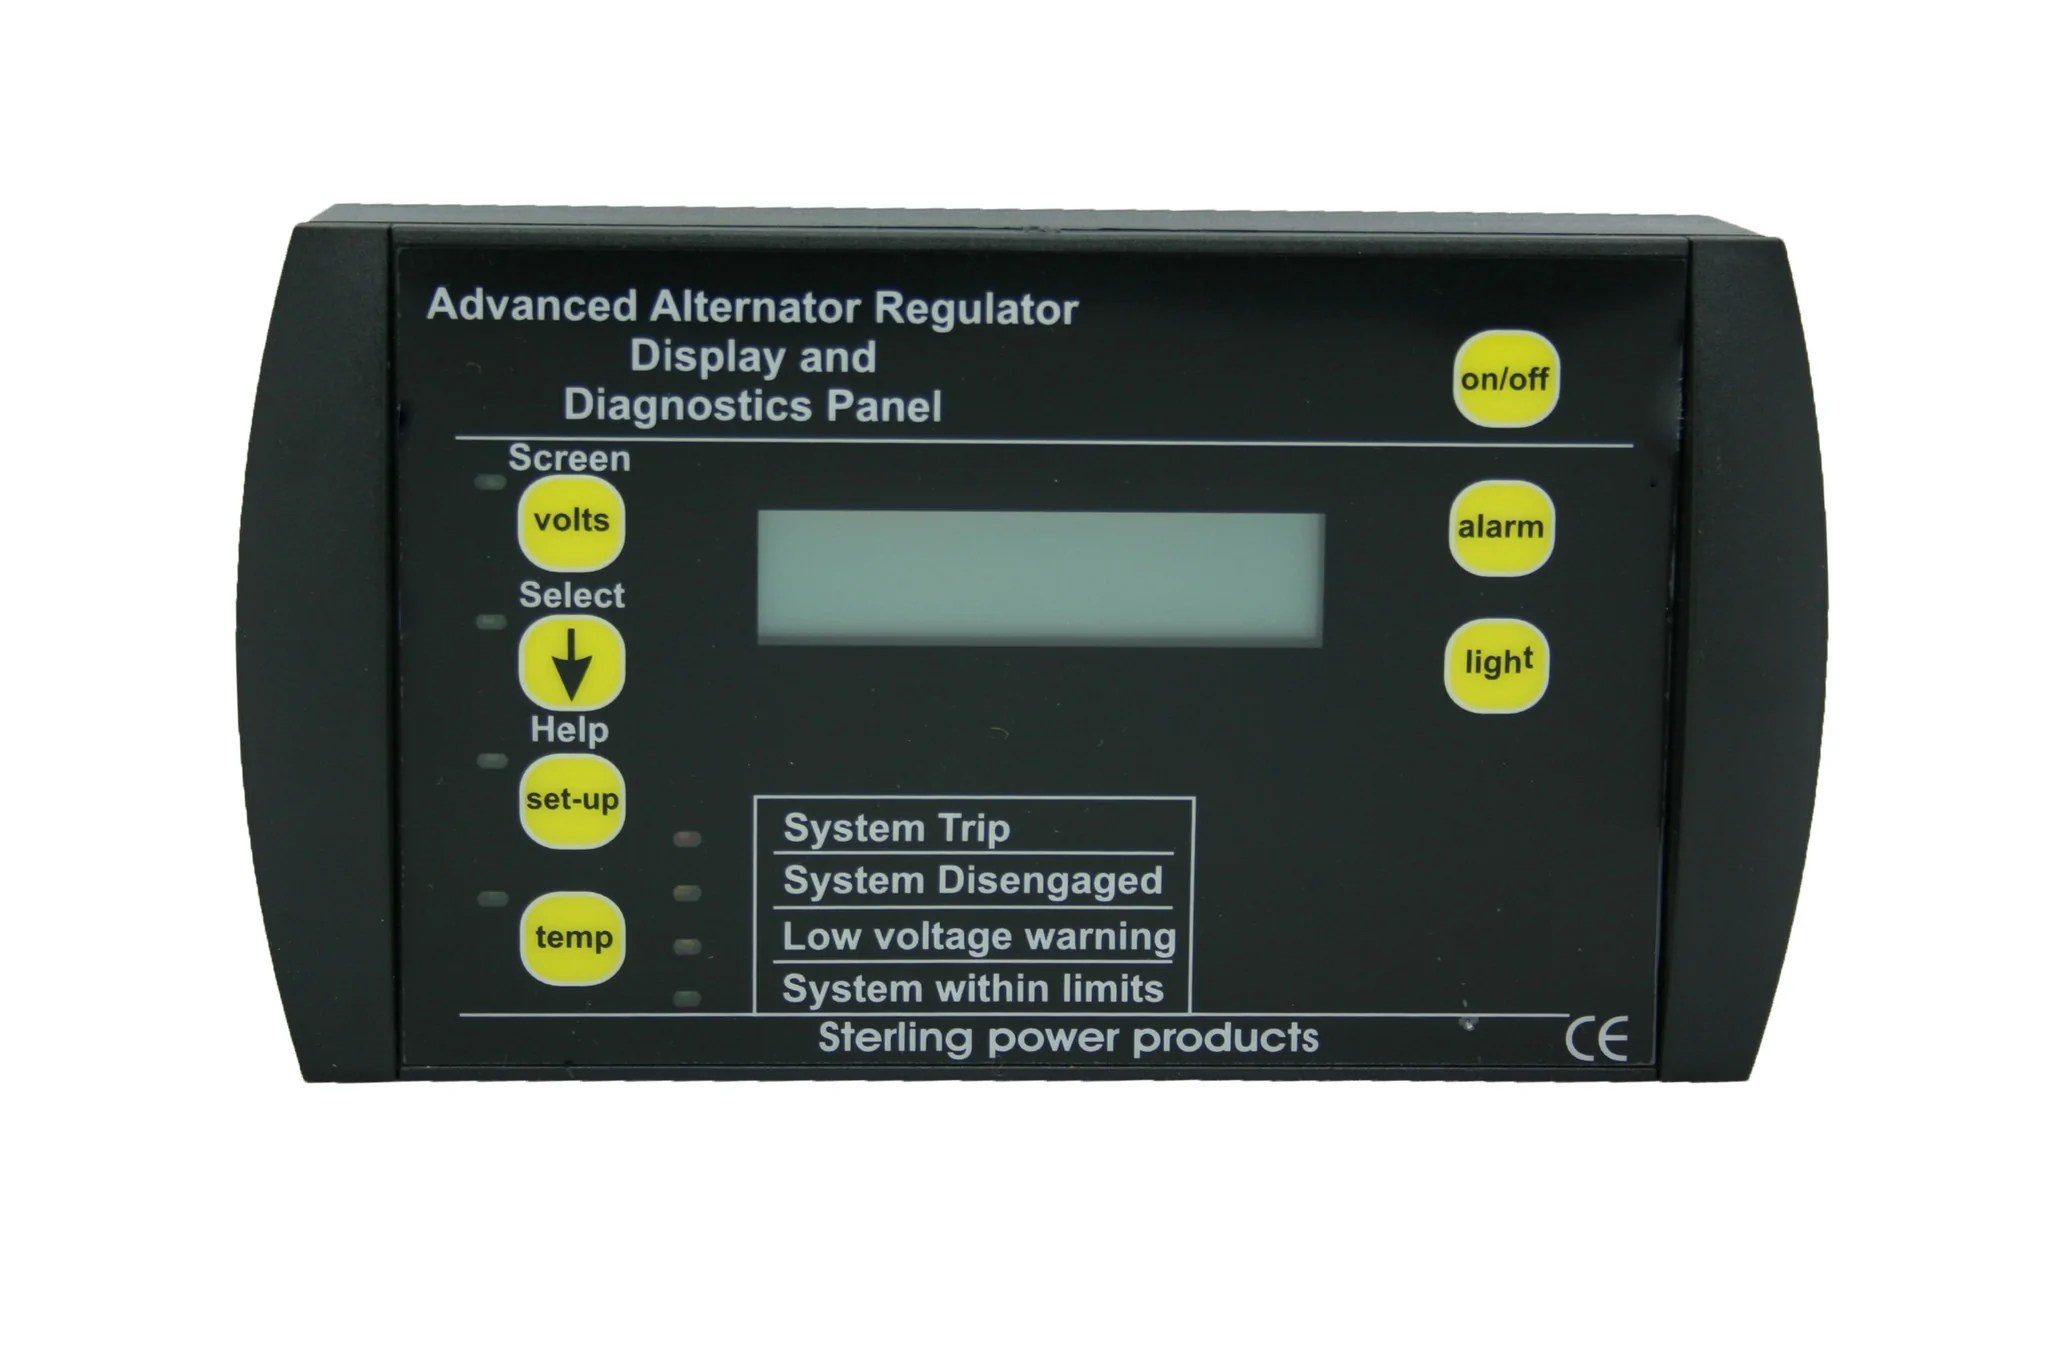 advanced digital alternator regulator pro reg d dw pdar pdarw remote control [ 2048 x 1367 Pixel ]